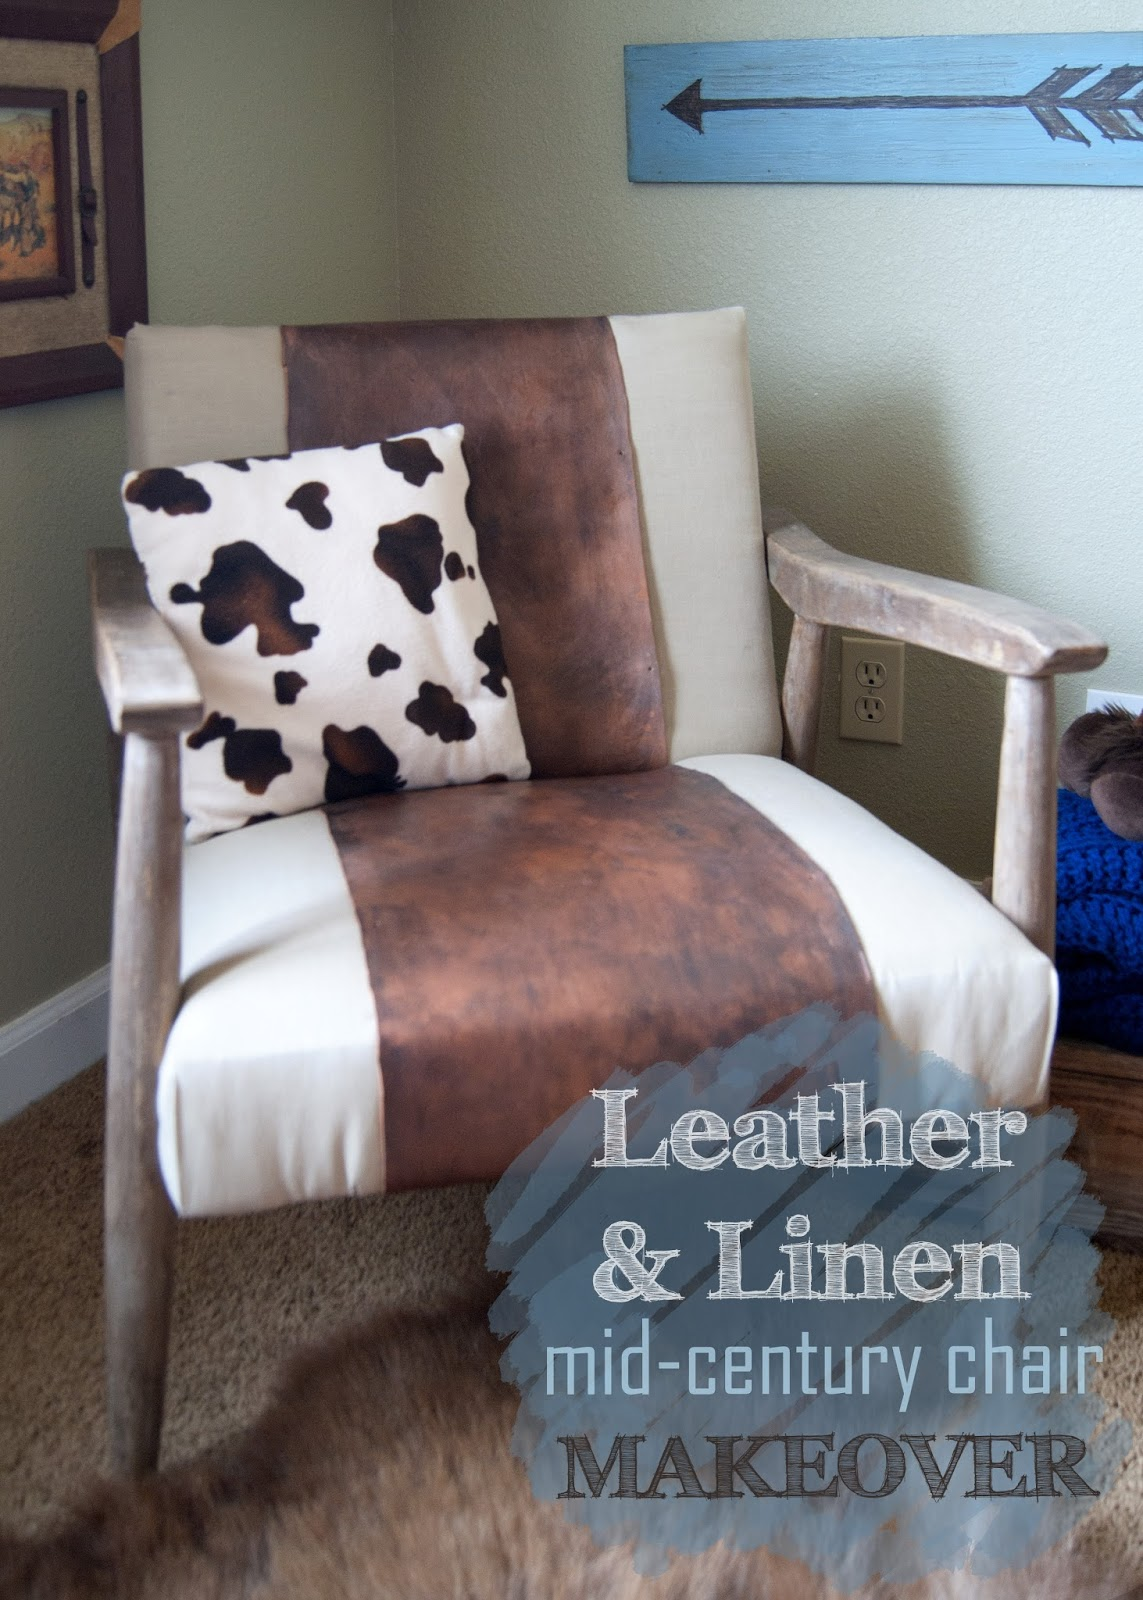 Mid century chair - leather, linen and cow print pillow